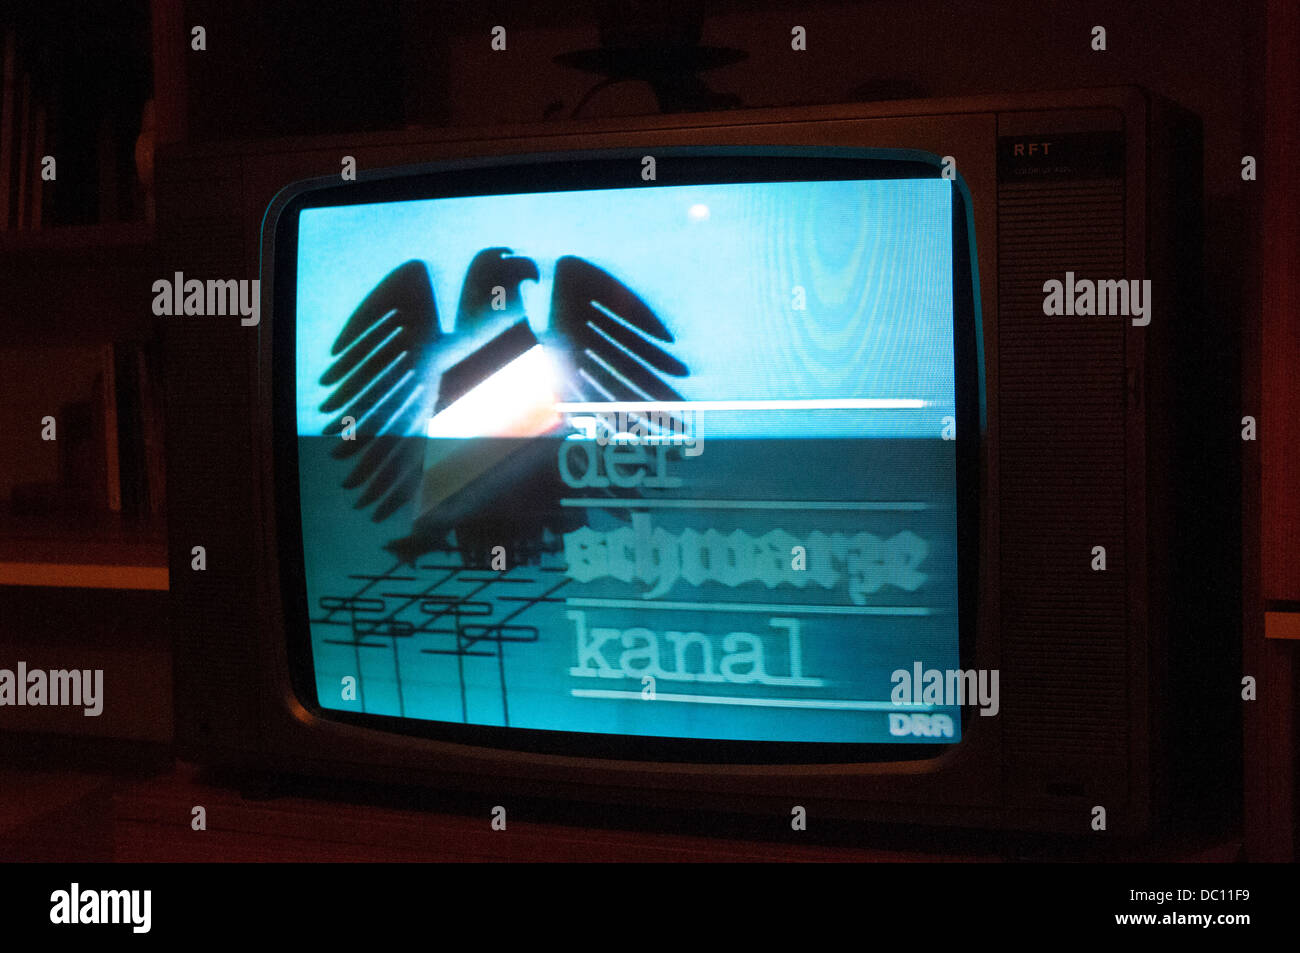 Germany, Berlin. Alexanderplatz. DDR Museum. TV playing the Black Channel. - Stock Image